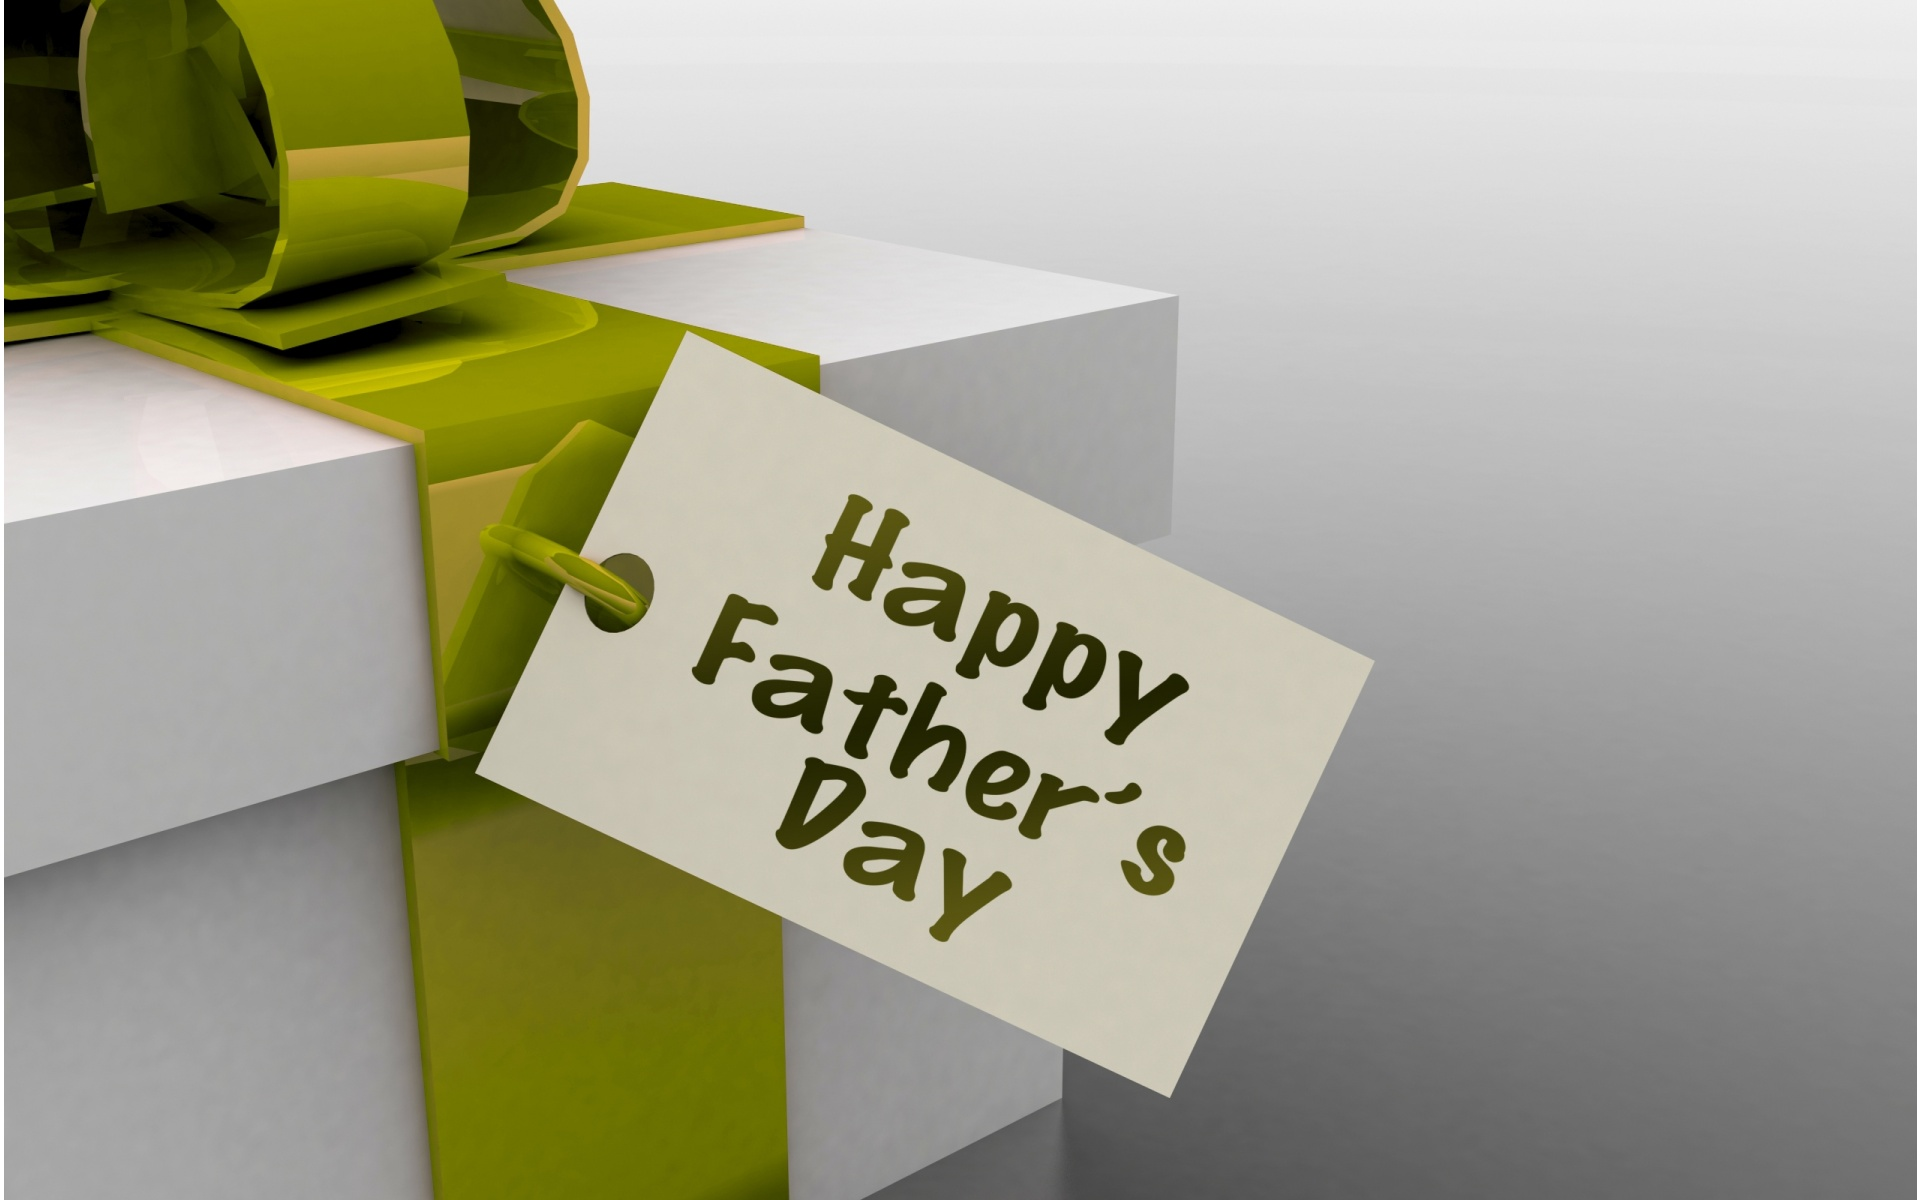 Happy Father's Day 2014 - Wallpaper, High Definition, High ...